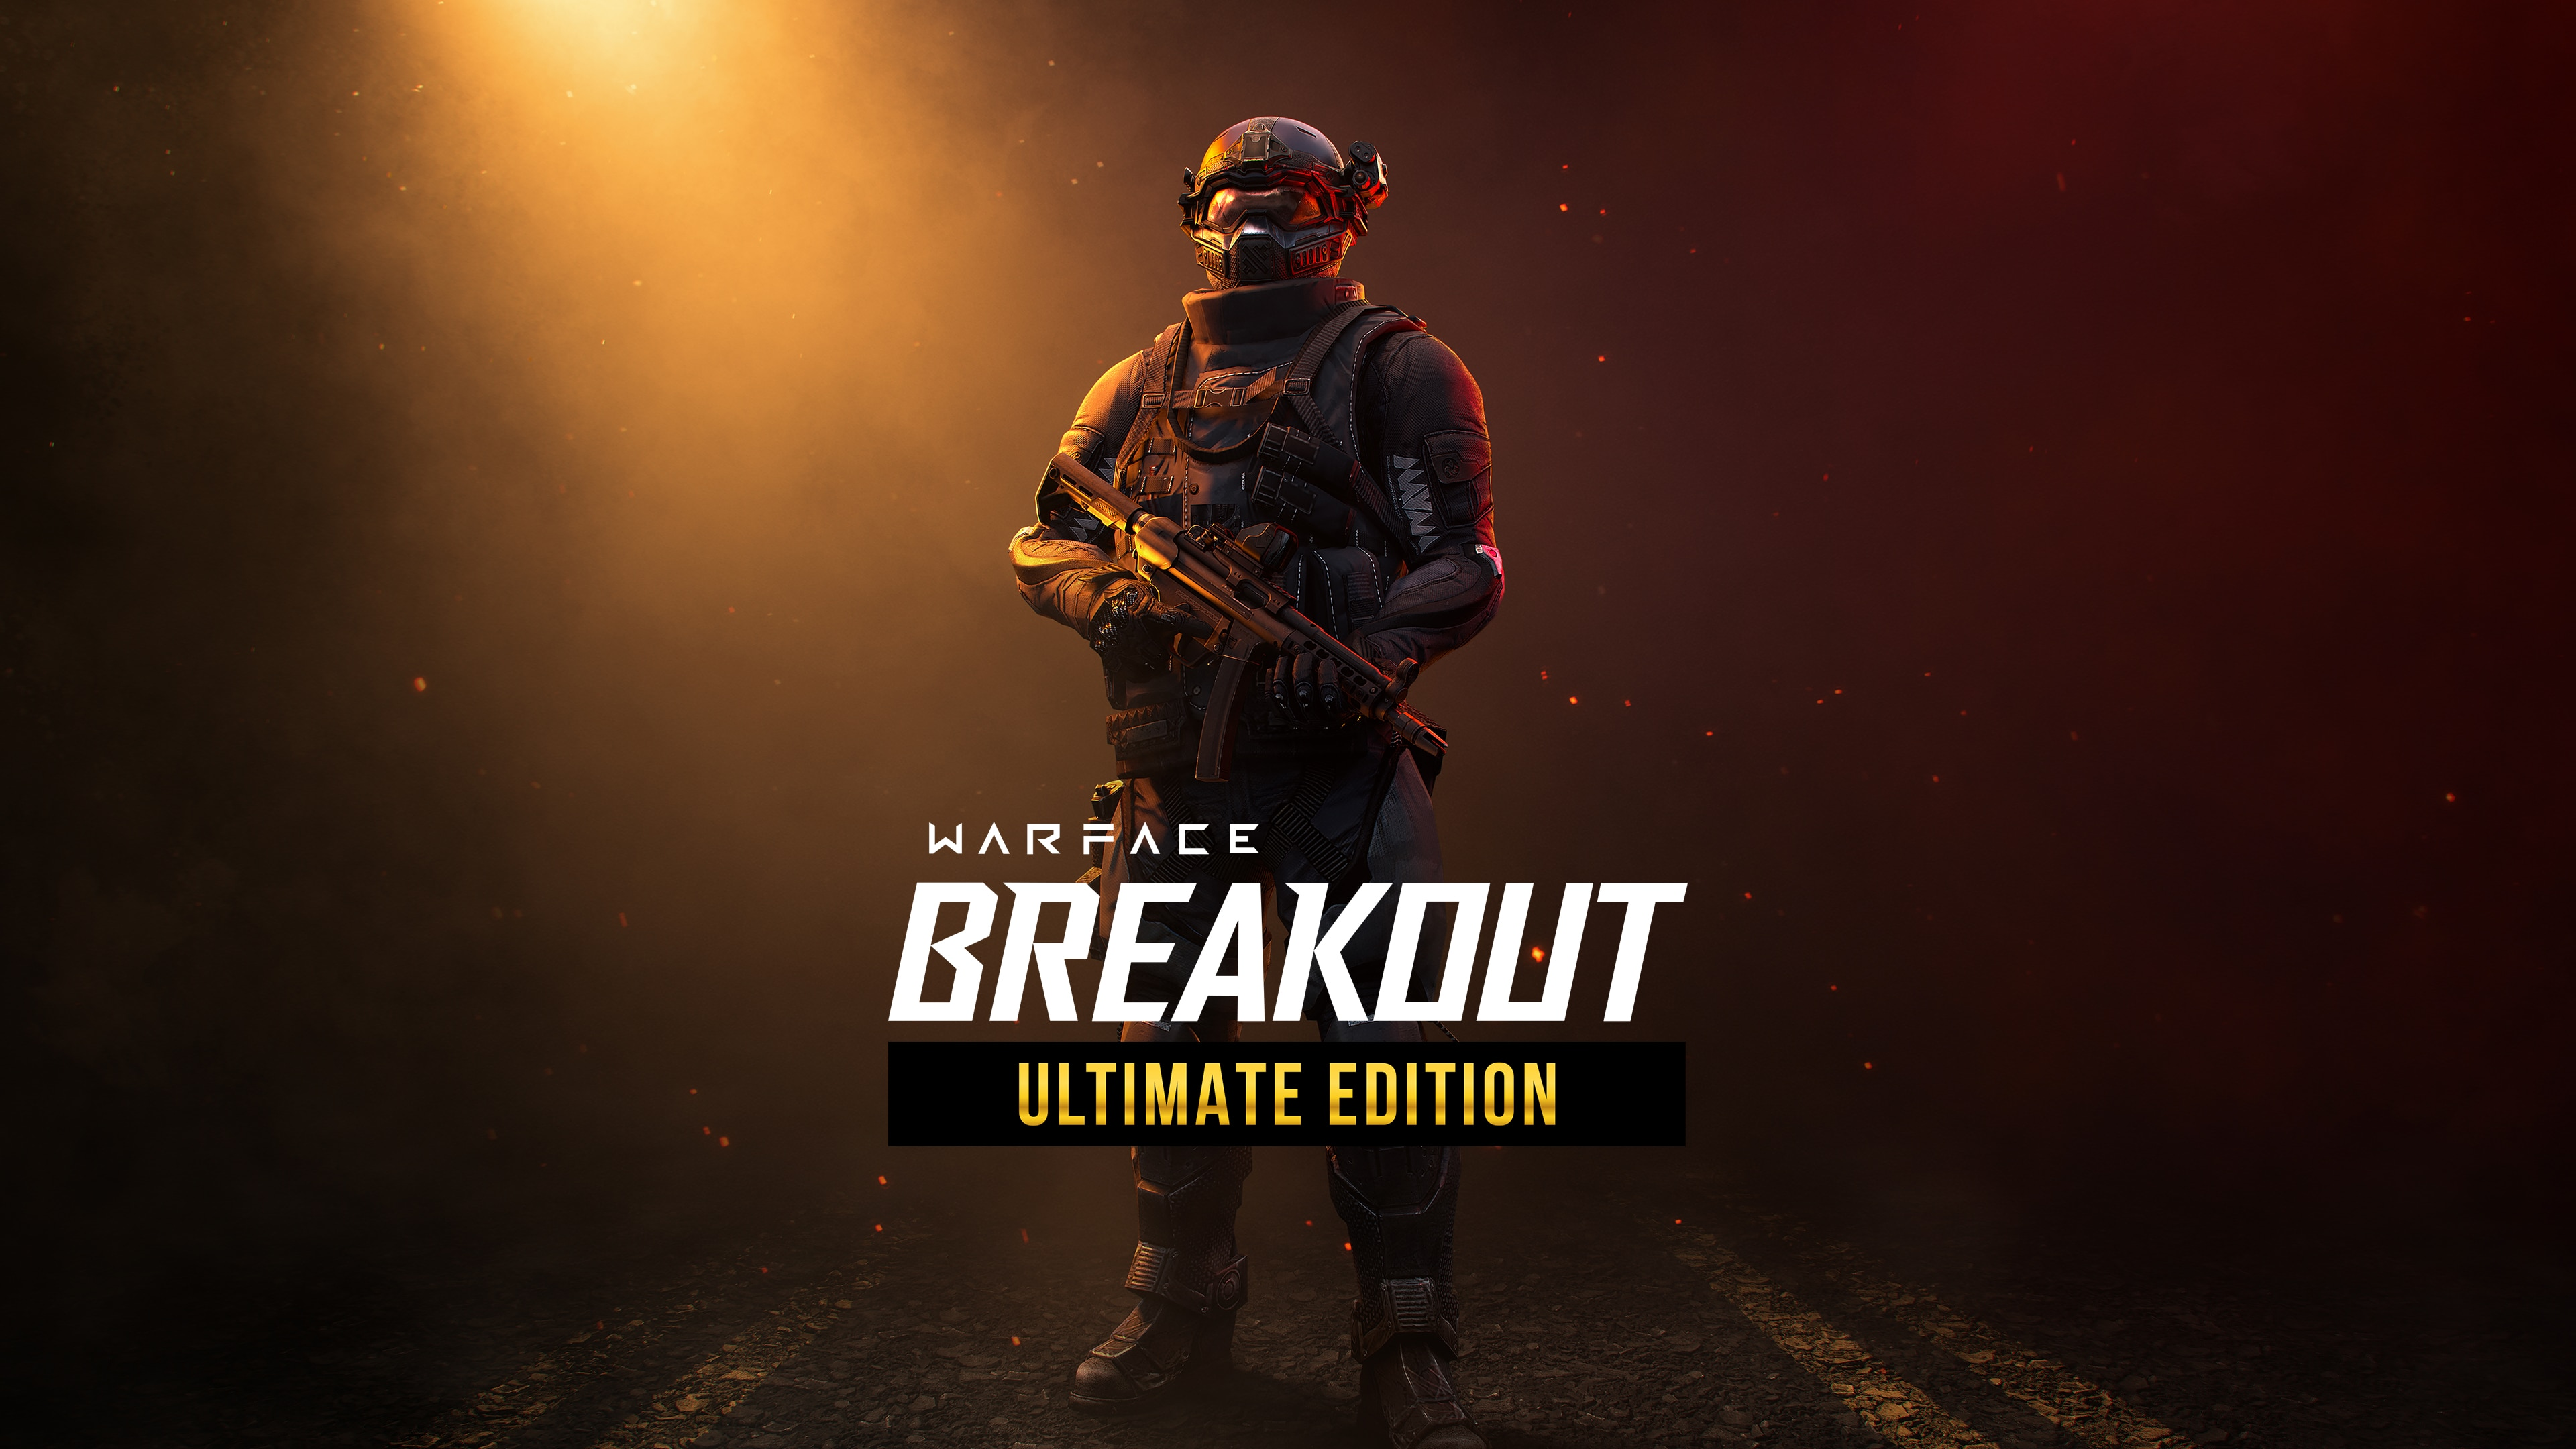 Warface: Breakout – Ultimate Edition